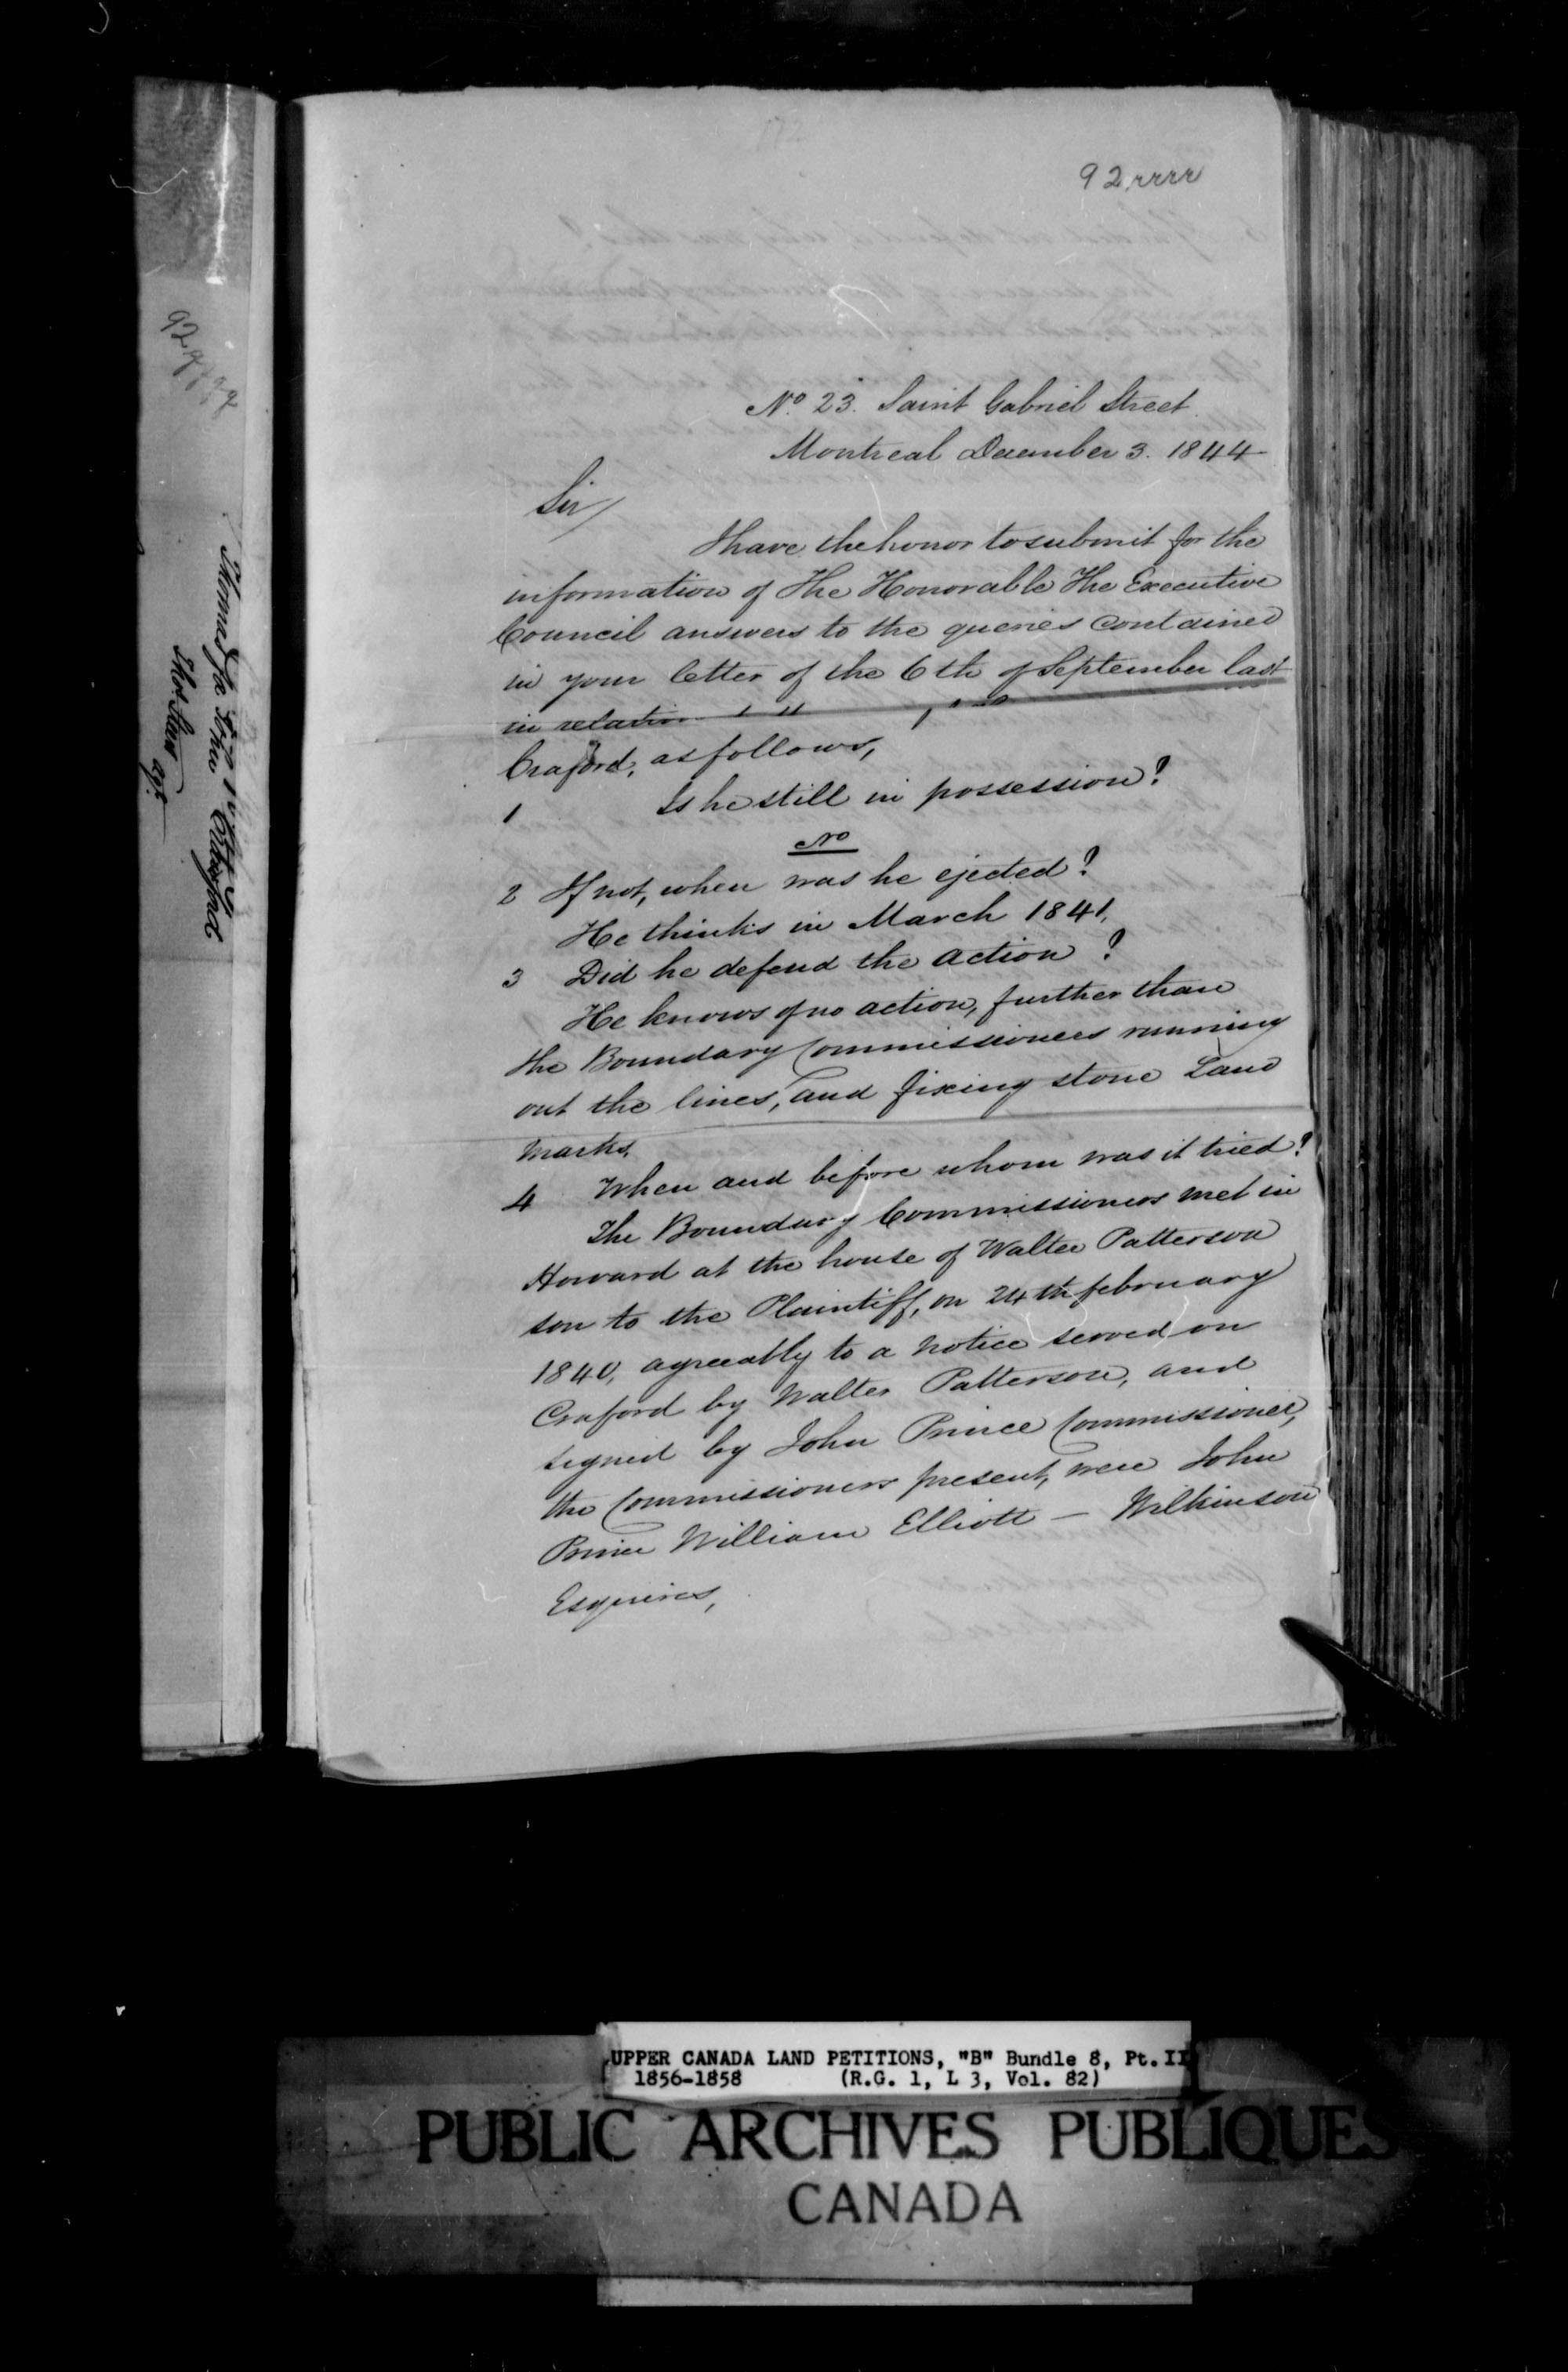 Title: Upper Canada Land Petitions (1763-1865) - Mikan Number: 205131 - Microform: c-1644